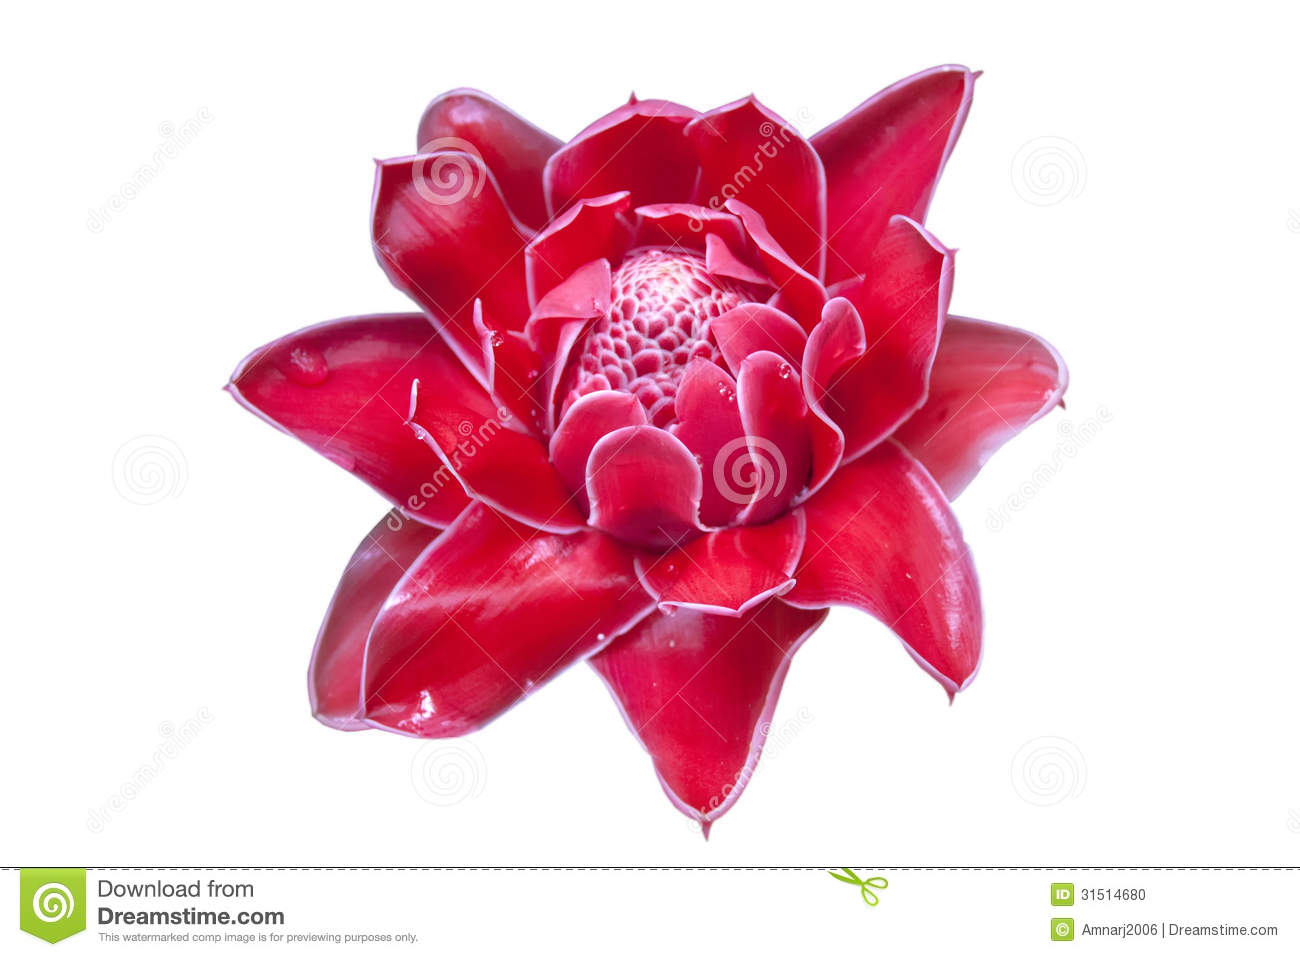 Torch Ginger Stock Photos, Images, & Pictures.